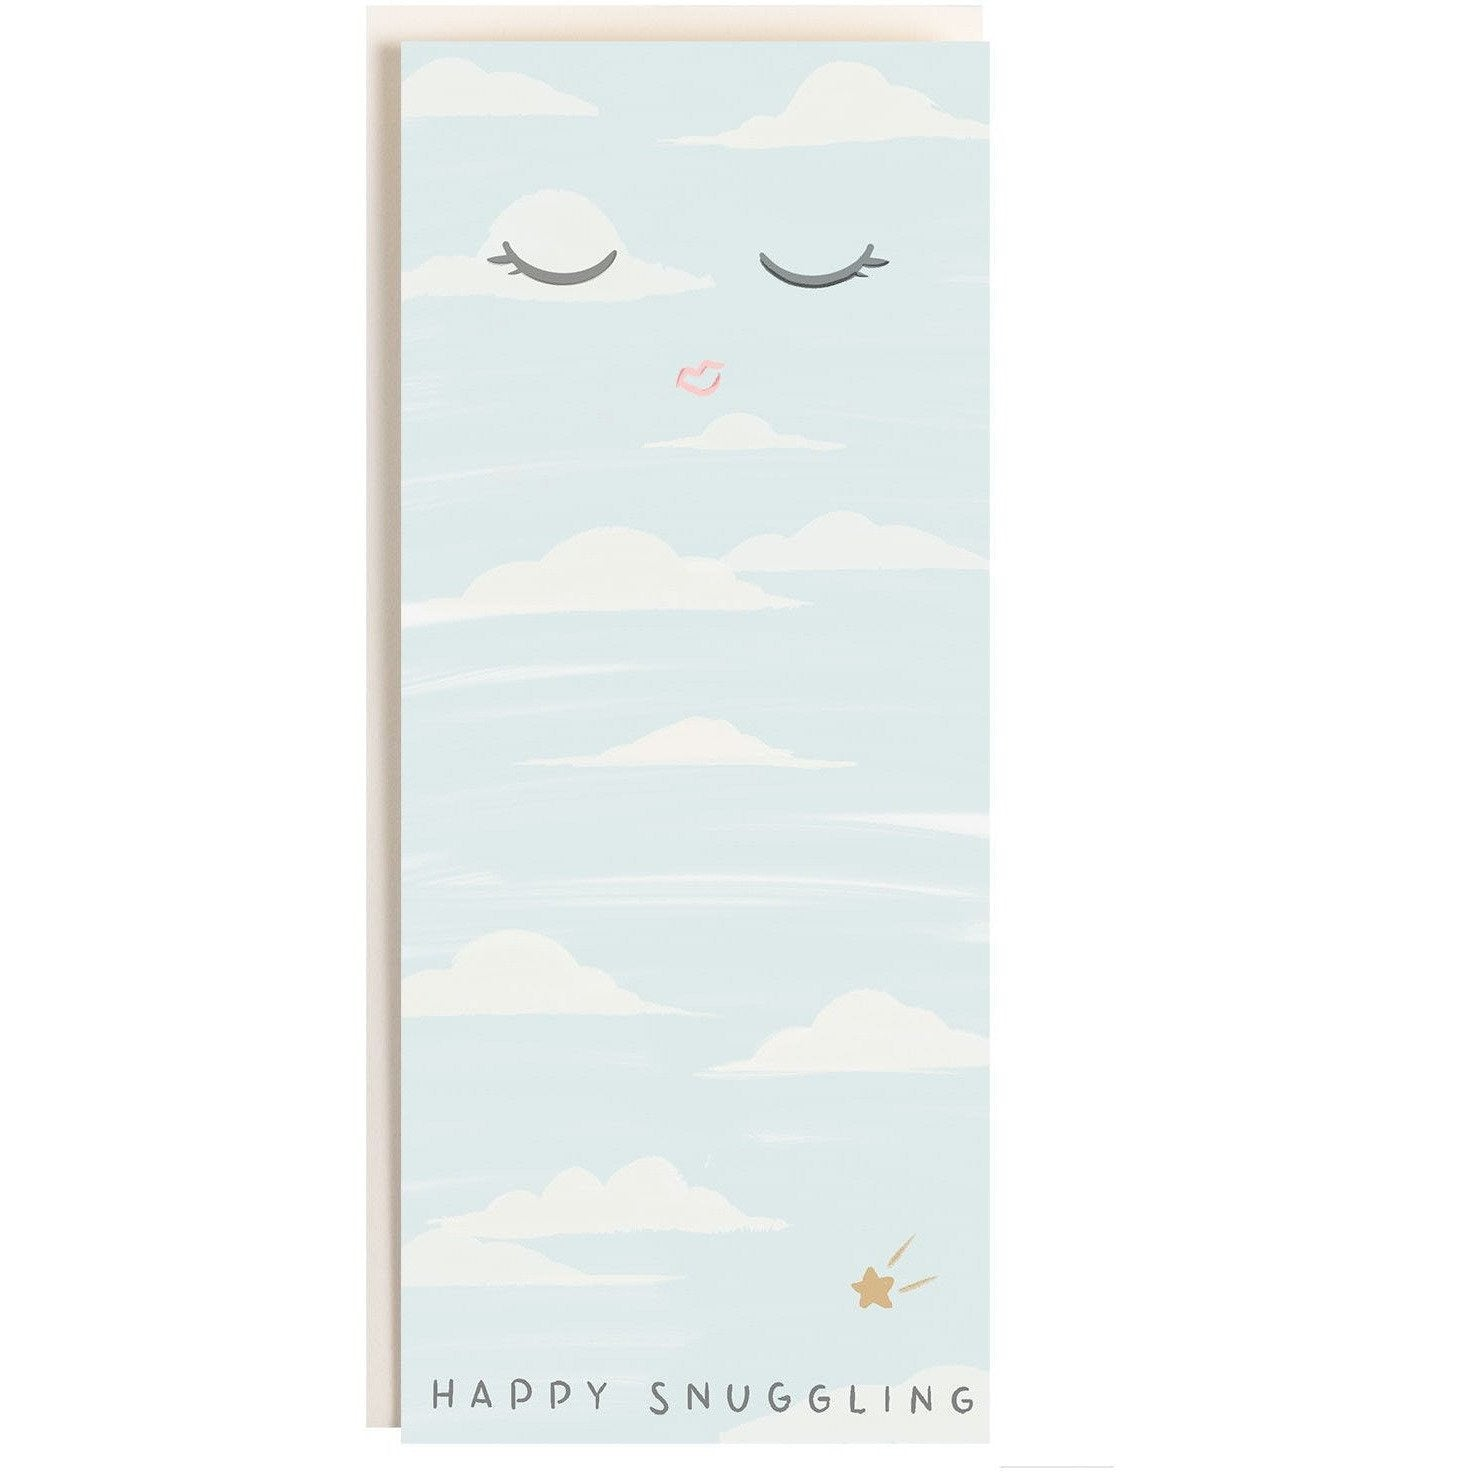 """Happy Snuggling"" Adorable Well-Wishing Card for New Parents - The First Snow"